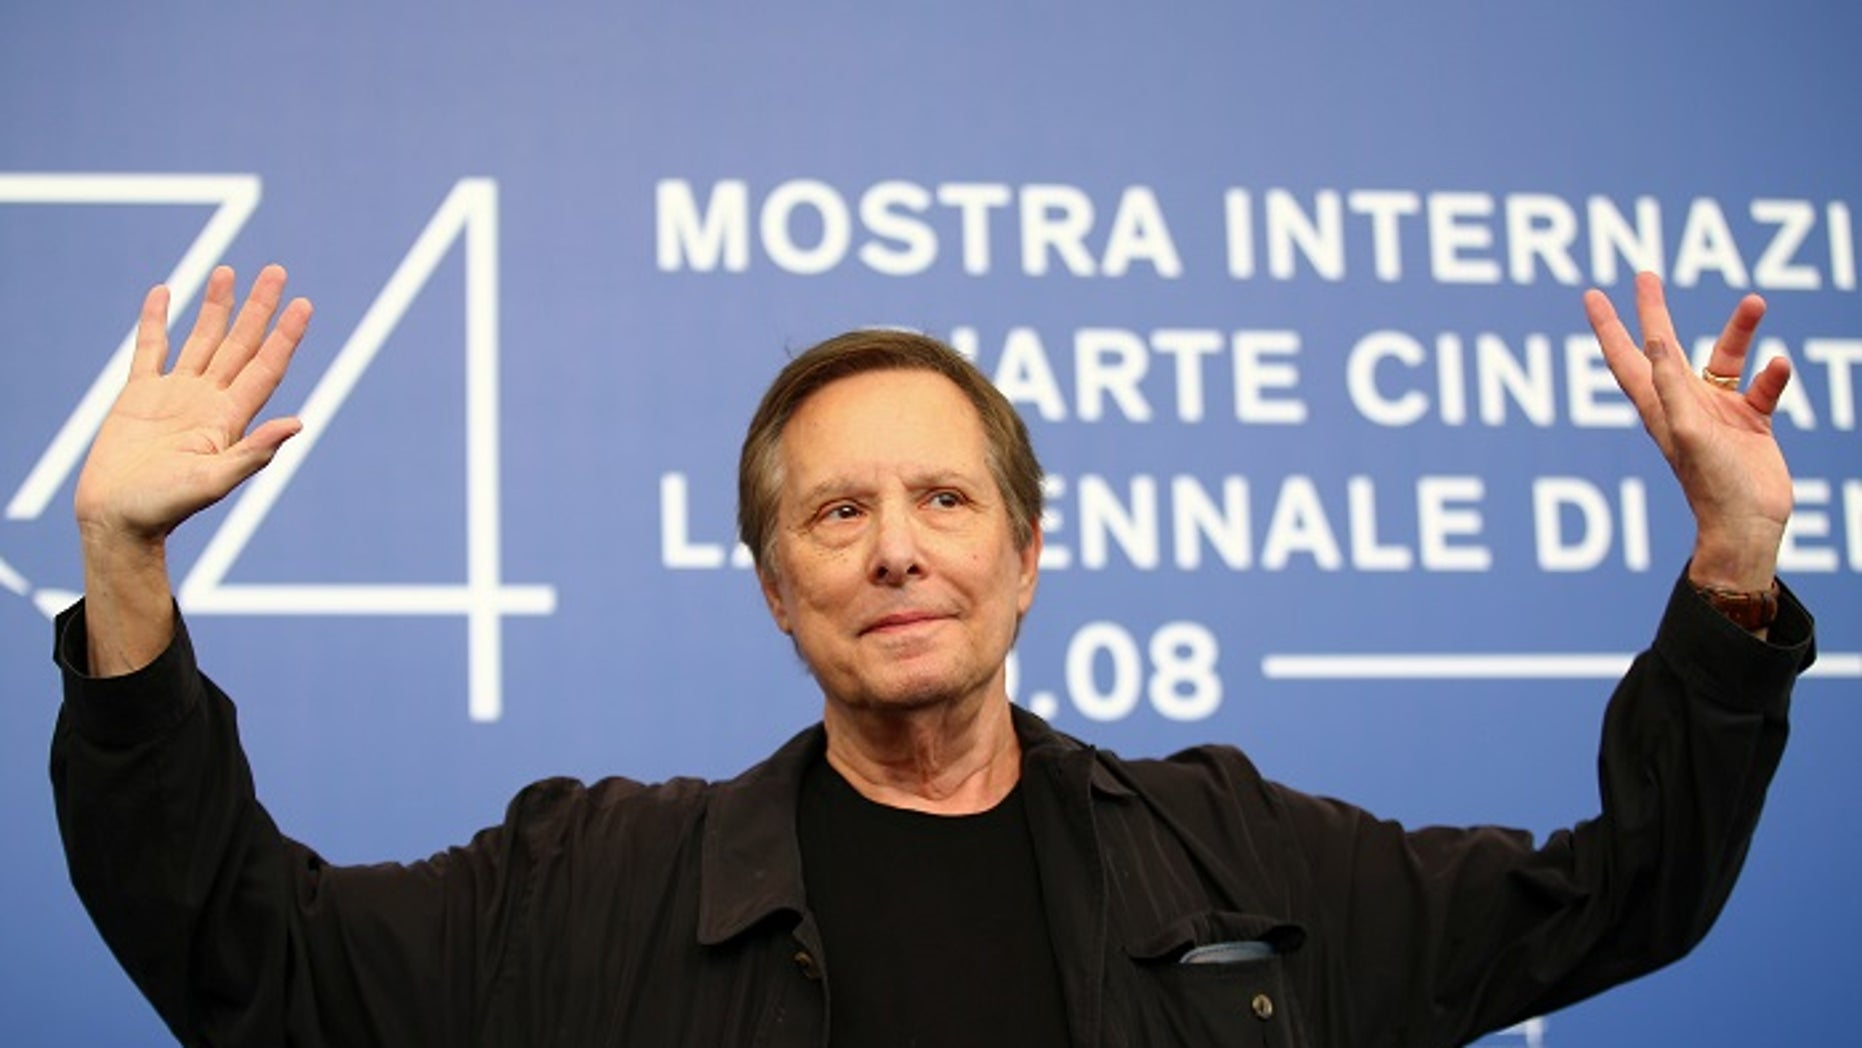 """Exorcist"" director William Friedkin said he filmed a real exorcism for his documentary."